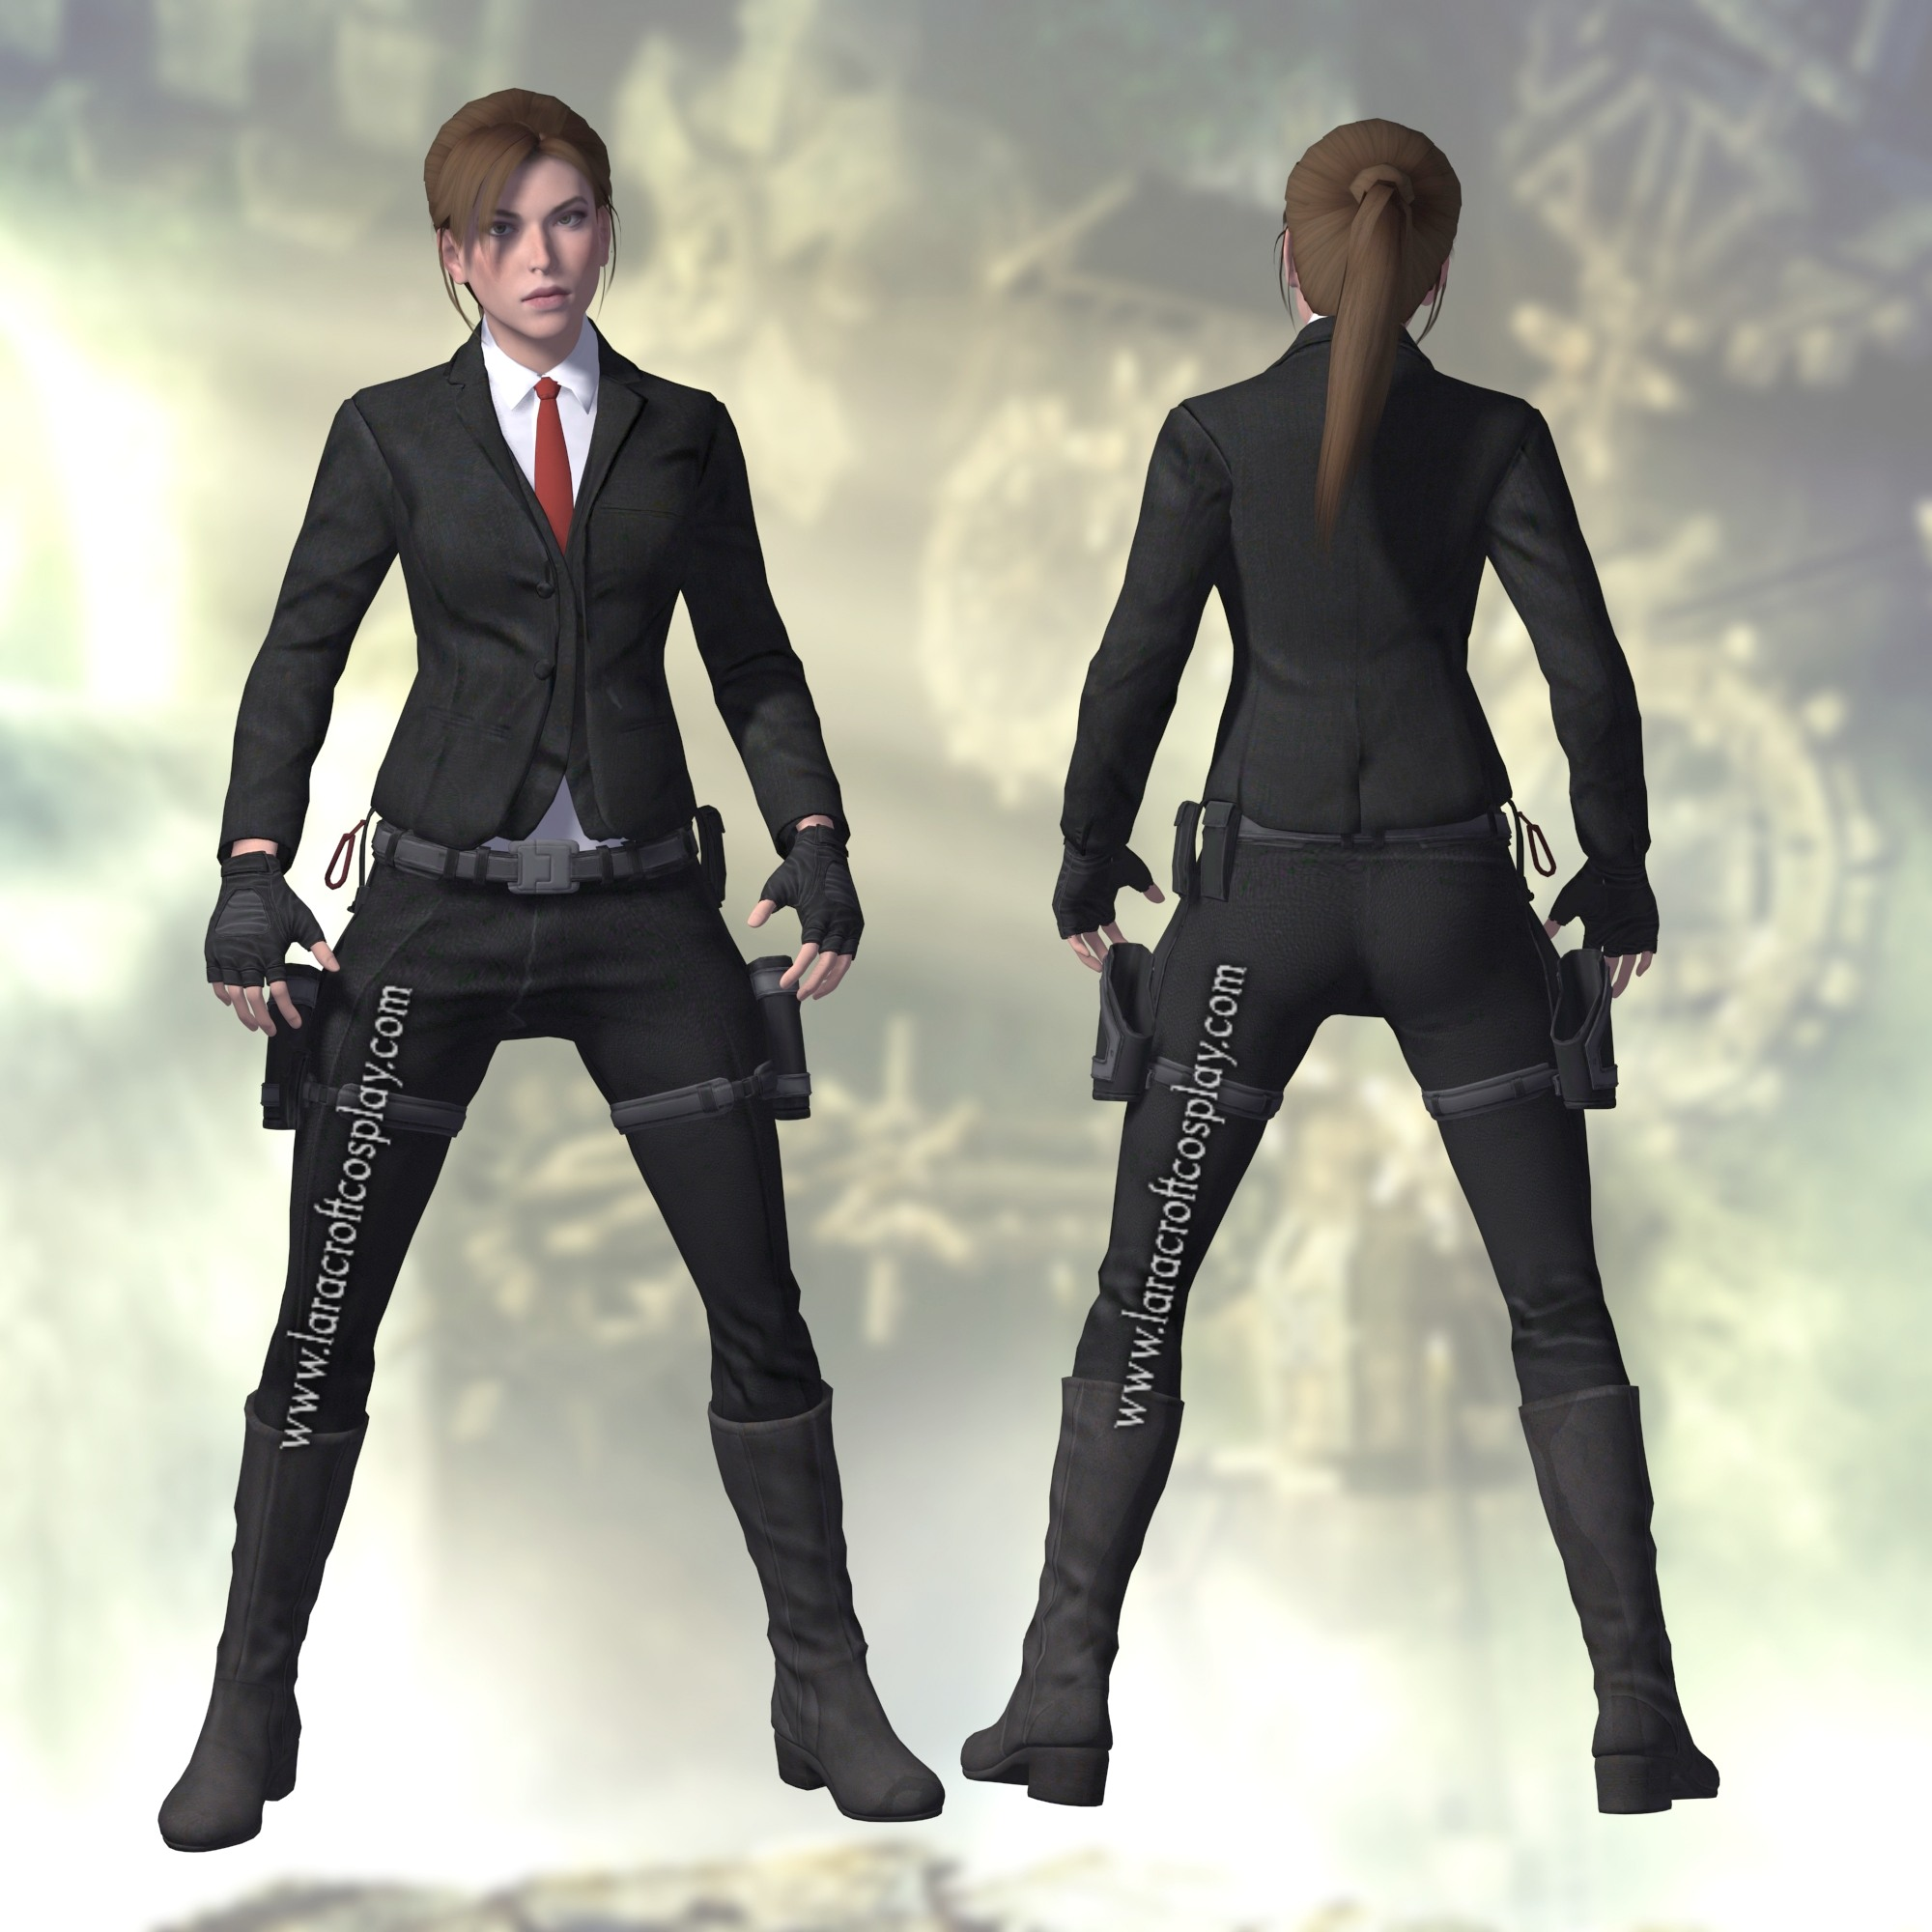 Tomb raider 2023 outfits adult videos